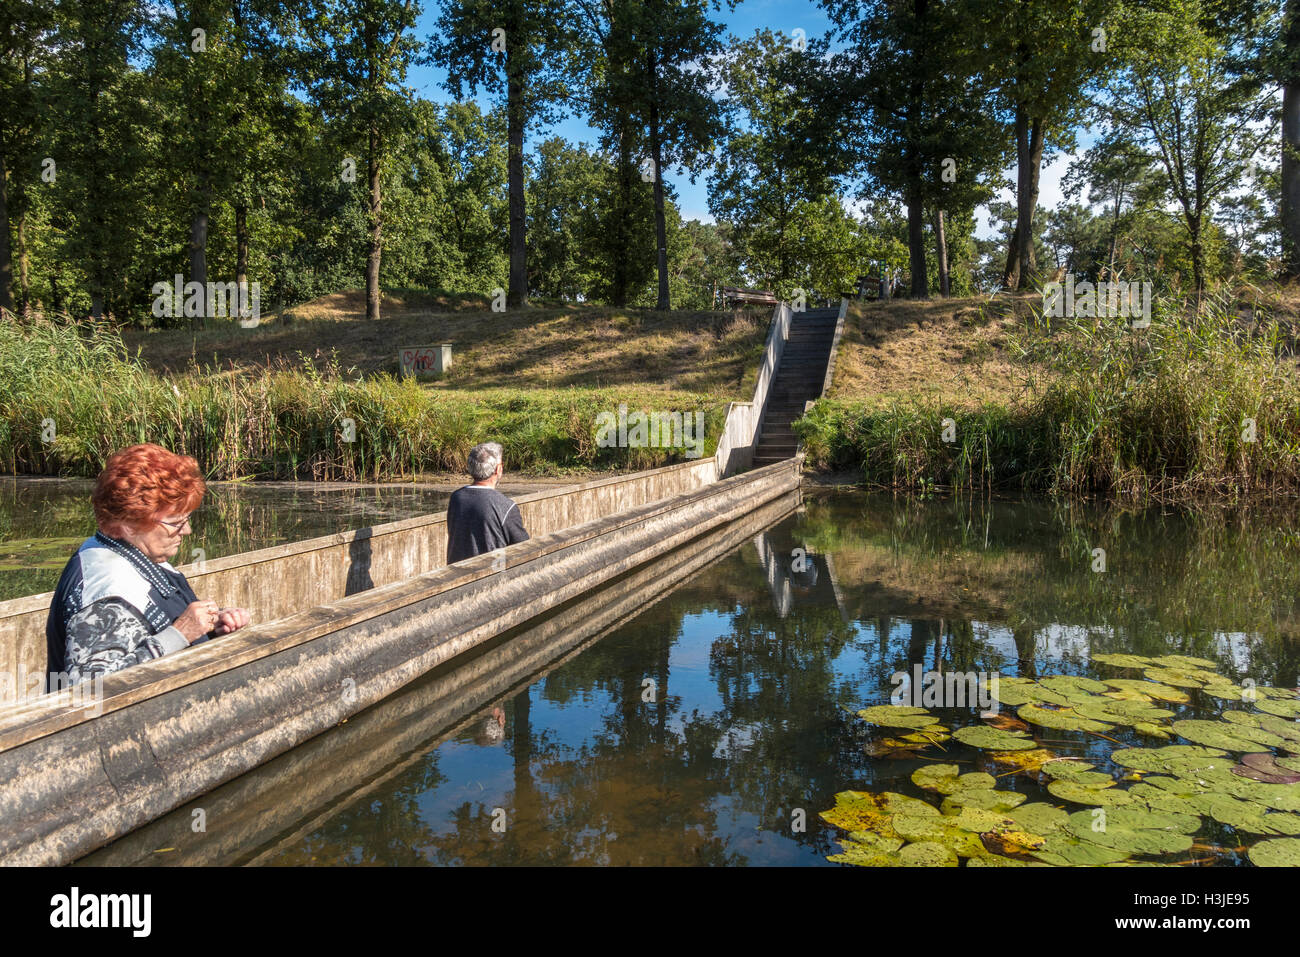 https://c7.alamy.com/comp/H3JE95/moses-bridge-netherlands-H3JE95.jpg